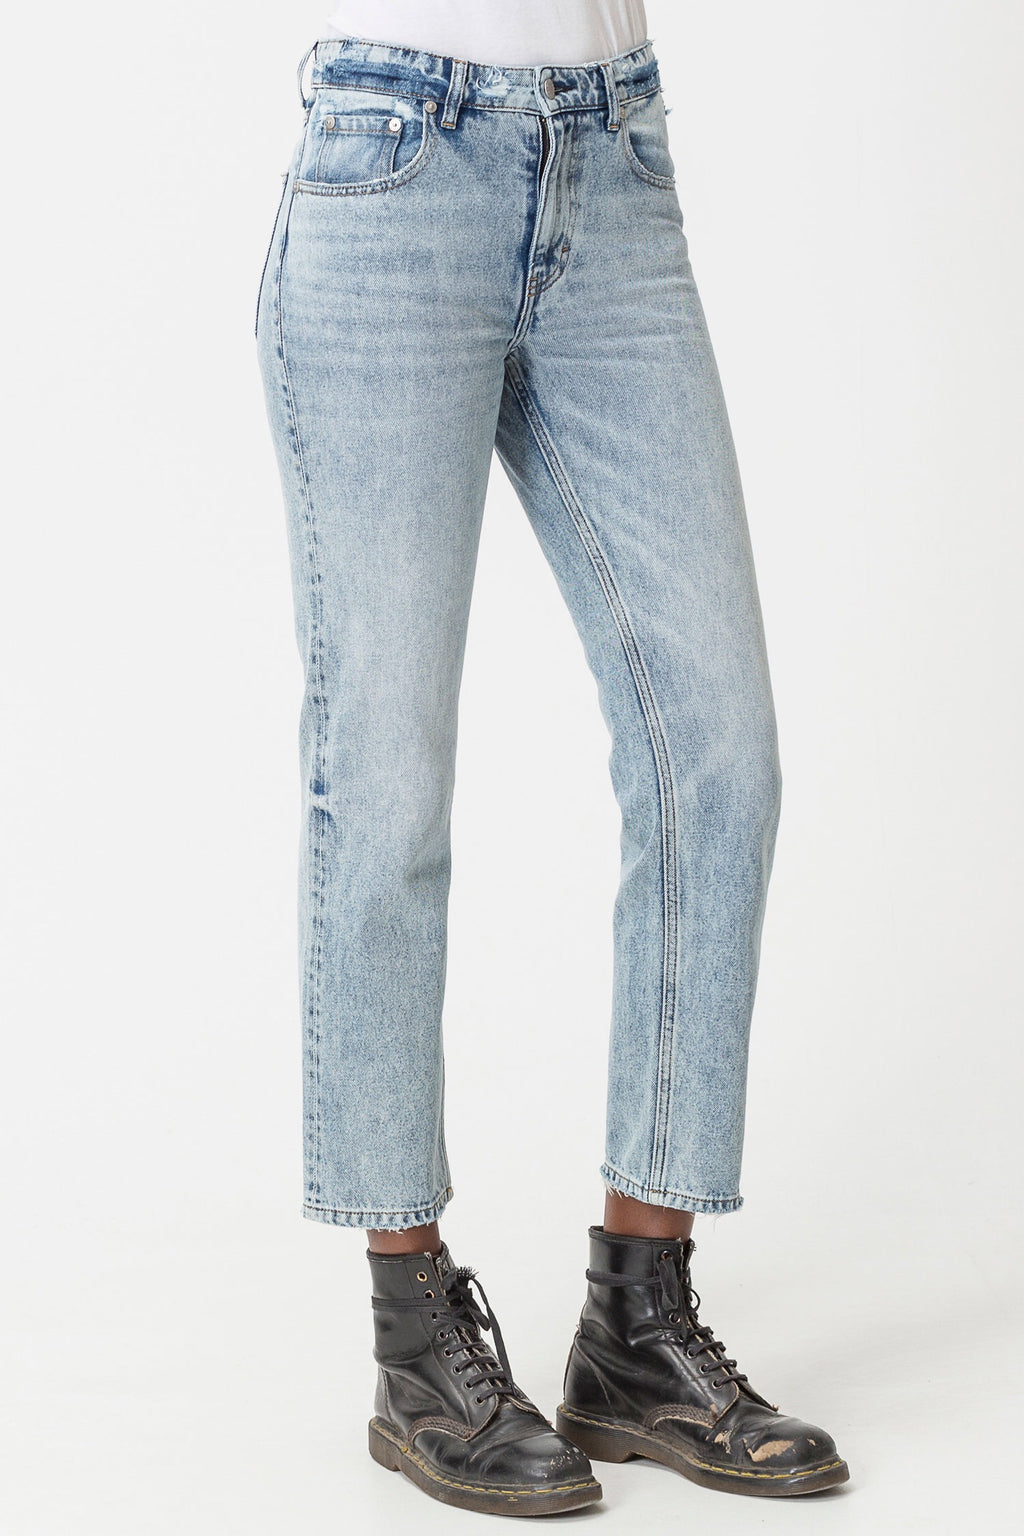 Cheap Monday - Revive Jeans - Pixel Blue - Gals